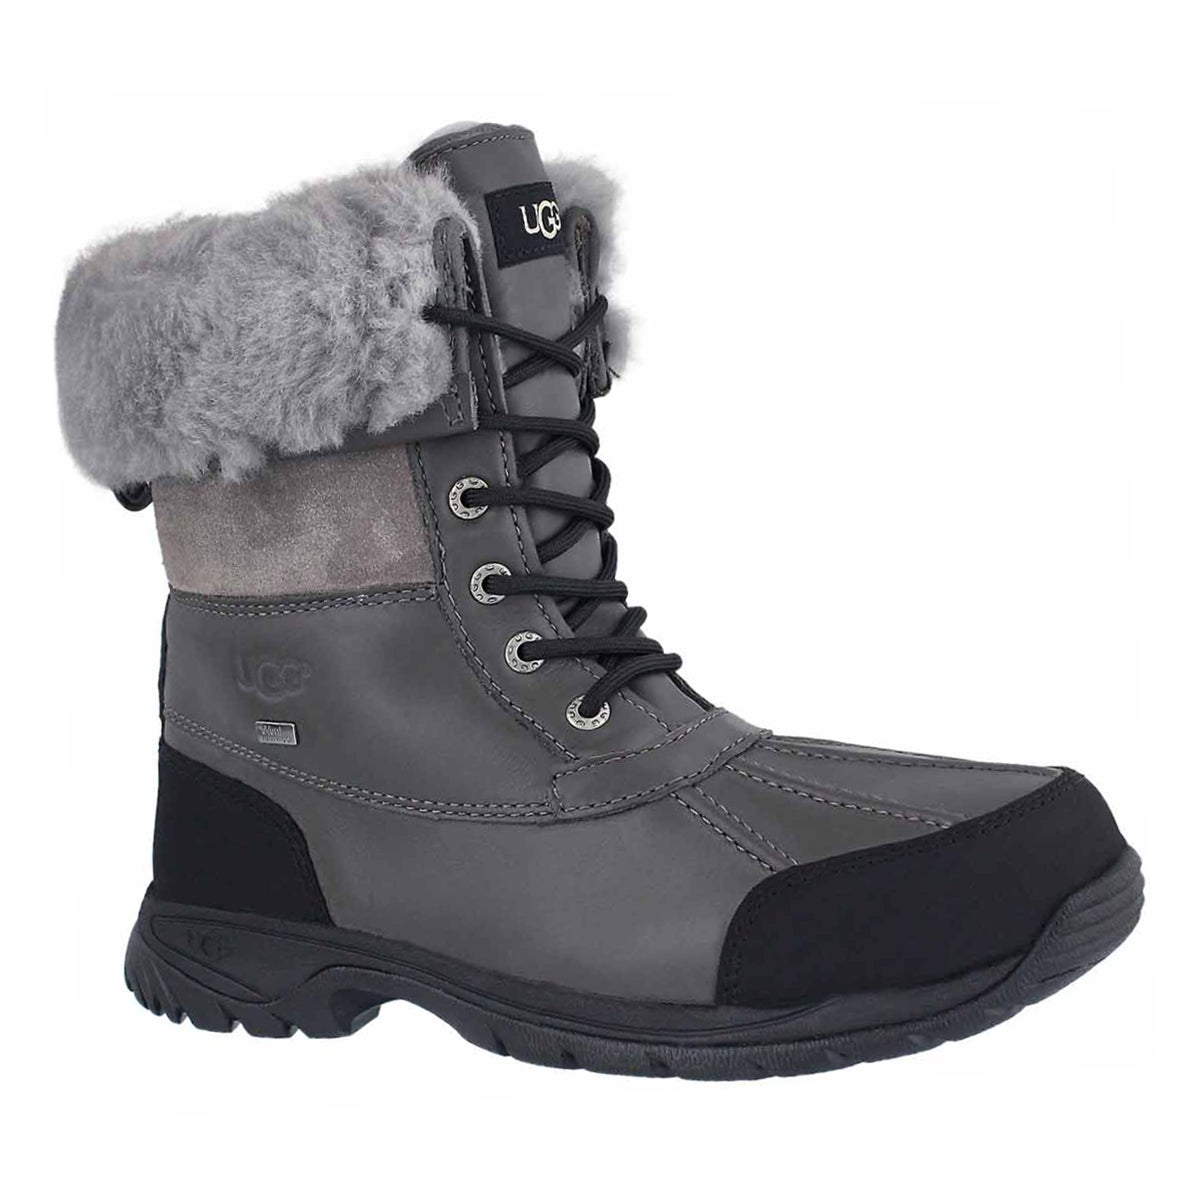 2457c1c091a Men's BUTTE metal sheepskin boots